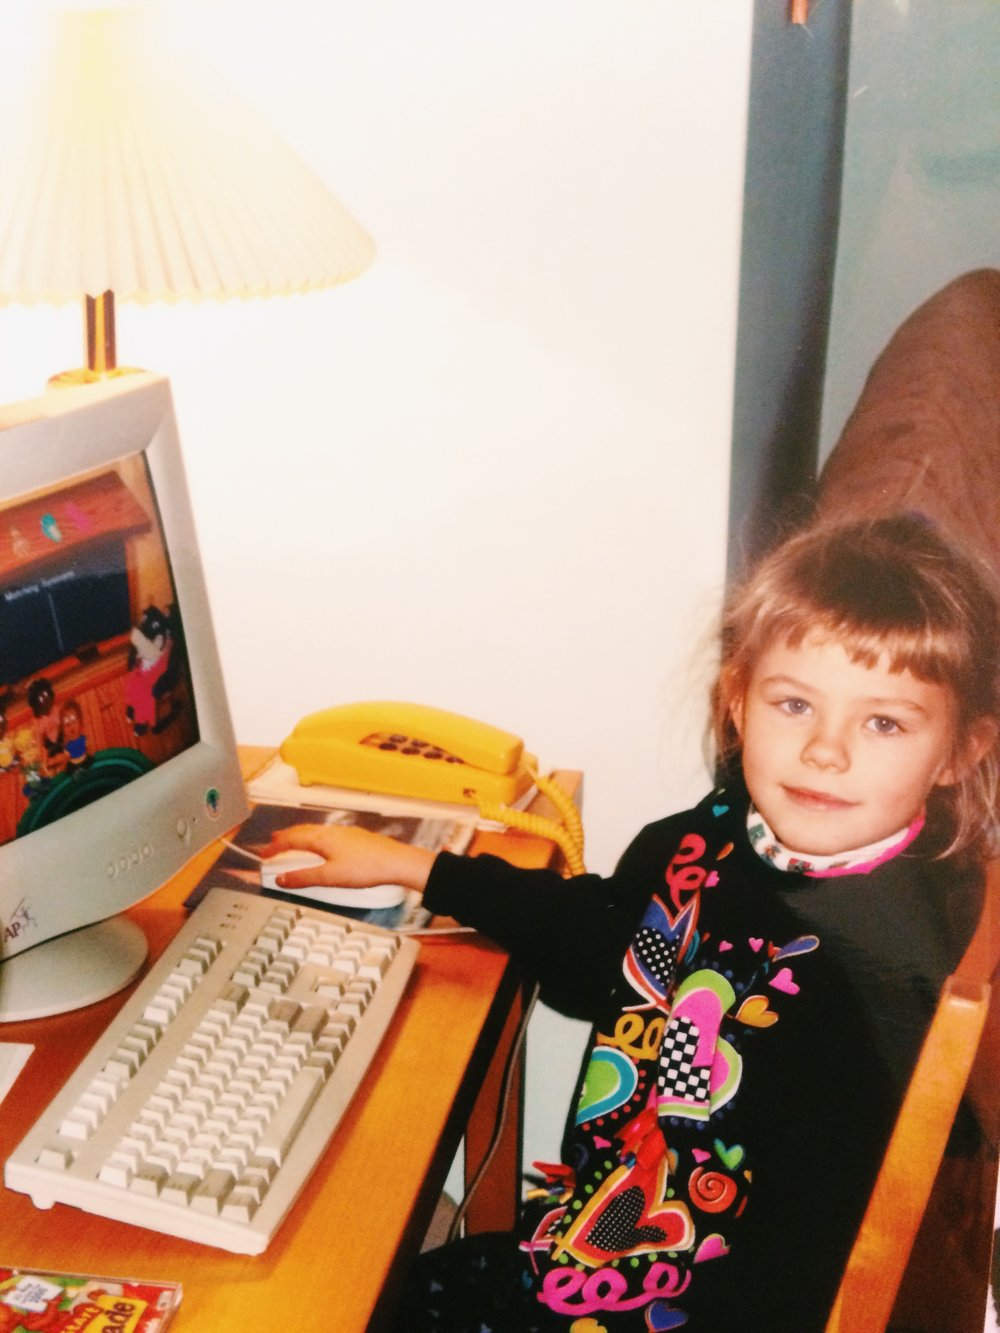 Surfin' the web since 200-something. Also rocking those baby bangs without even a care in the world.